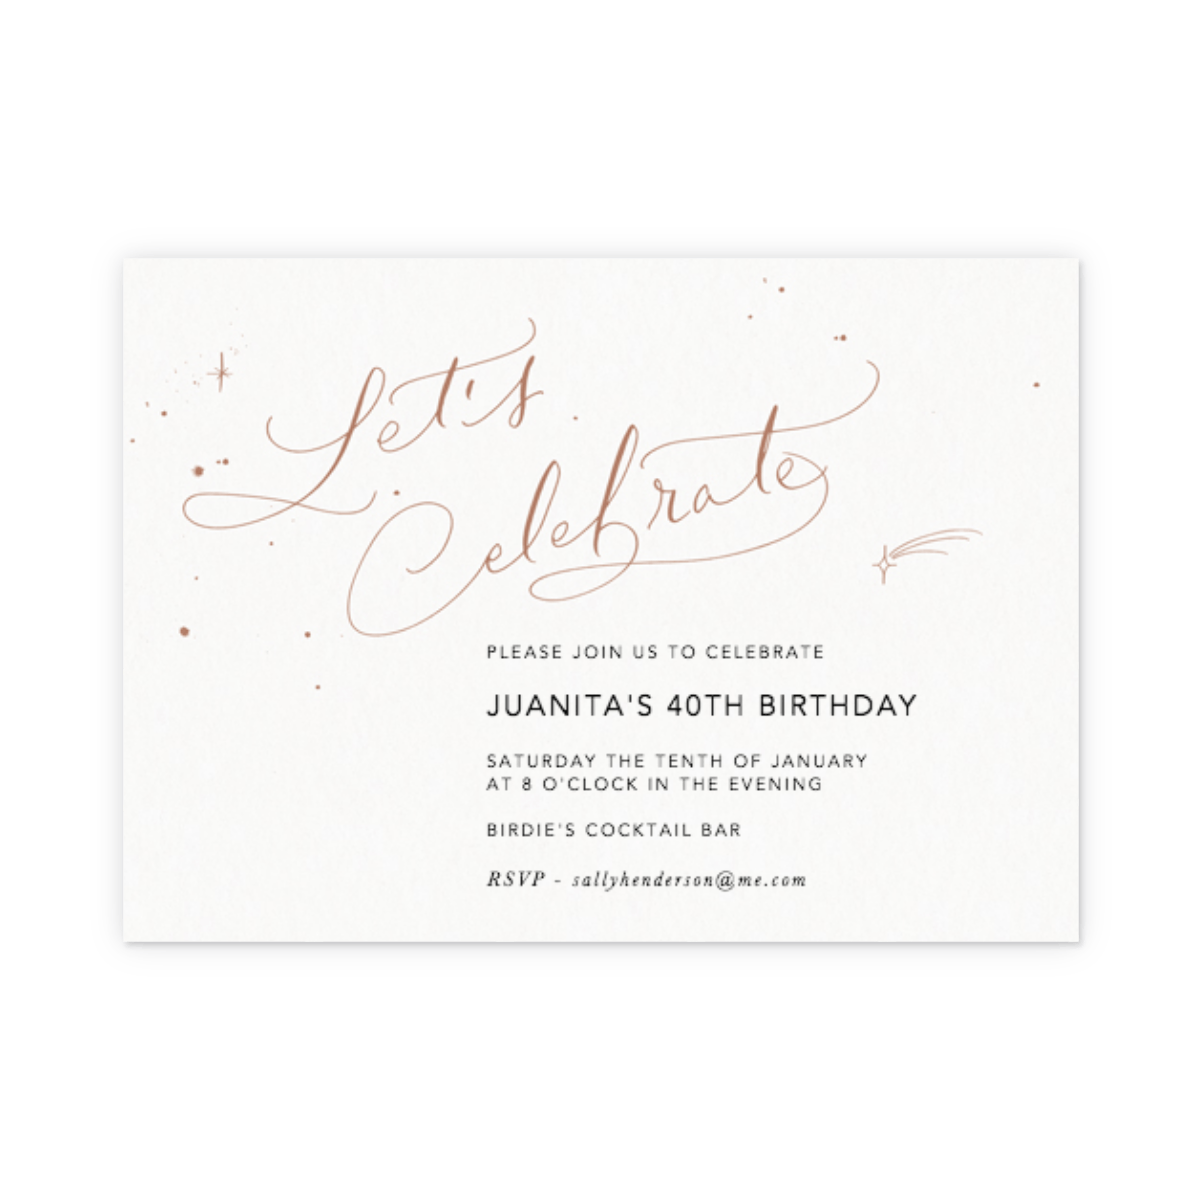 Https%3a%2f%2fwww.papier.com%2fproduct image%2f25974%2f10%2flet s celebrate starry bronze 6500 front 1542217435.png?ixlib=rb 1.1